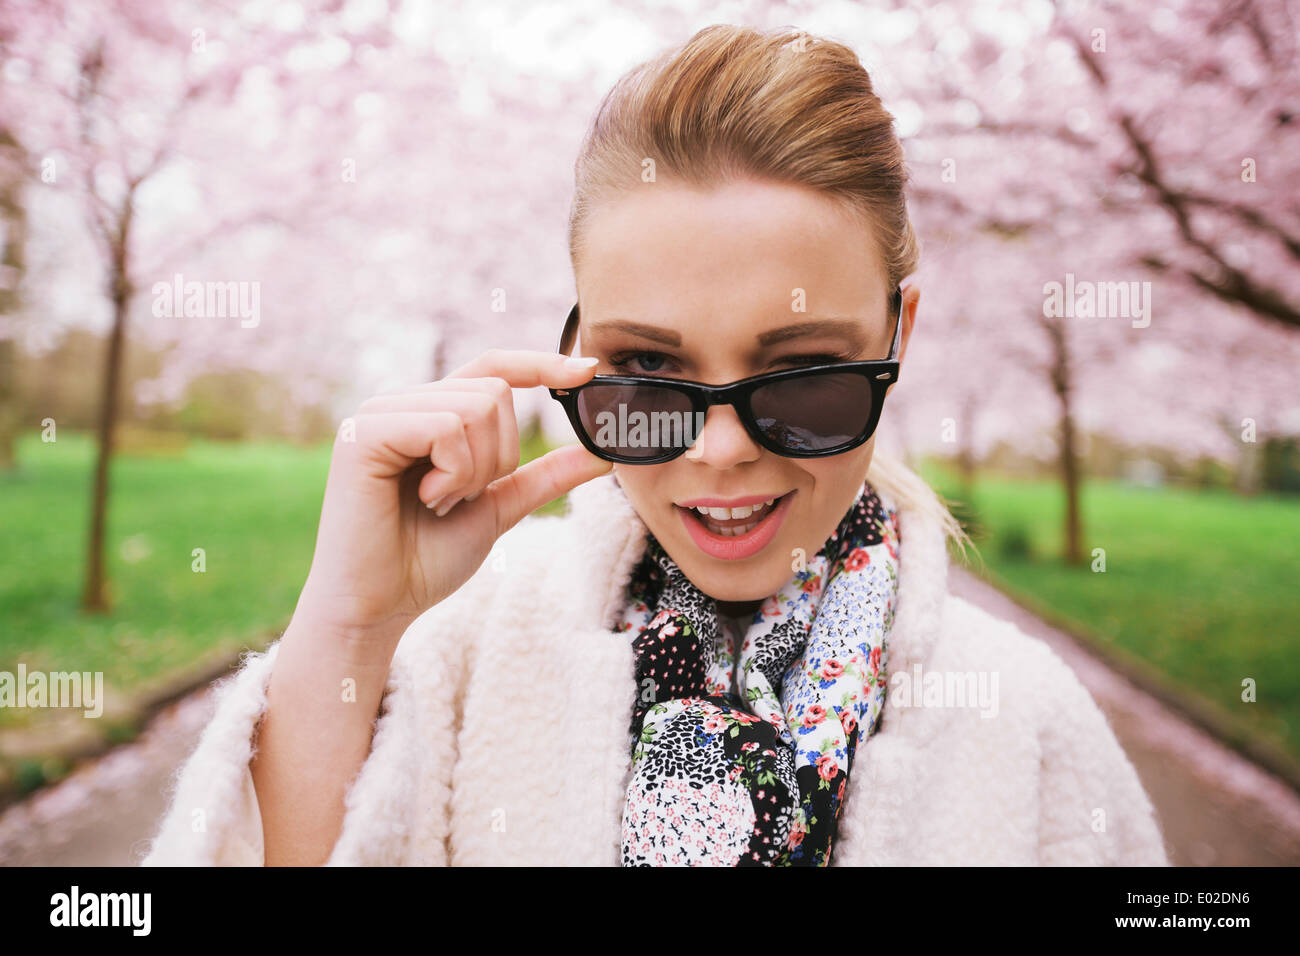 Close up image of cute young woman winking at camera. Naughty female model at spring park wearing sunglasses. Stock Photo